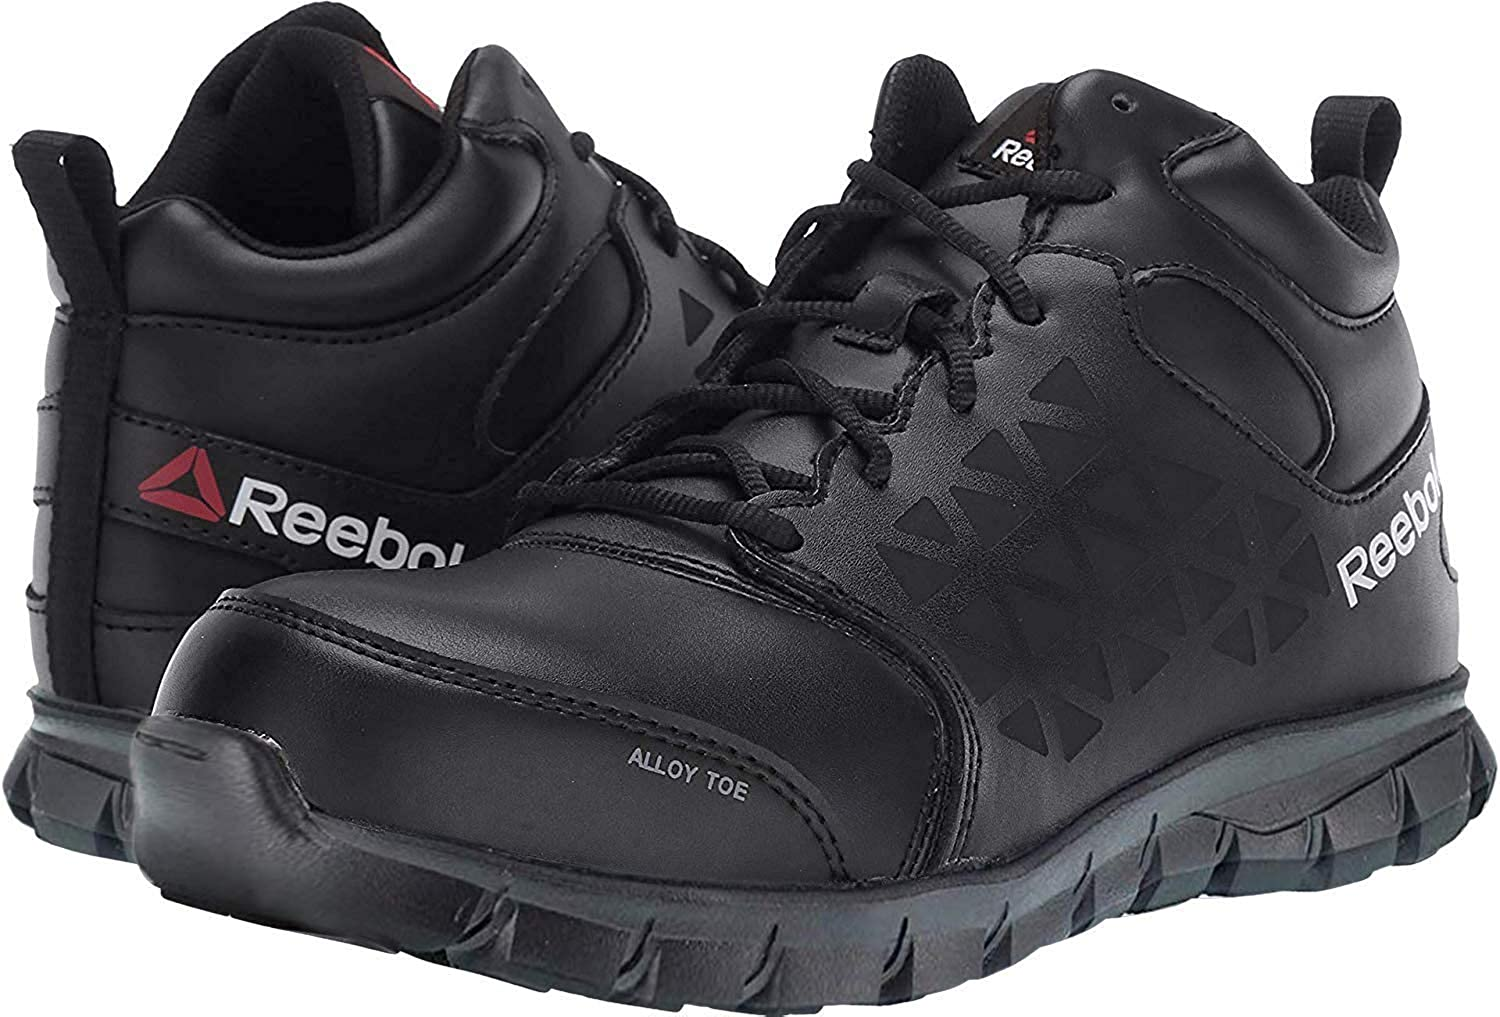 Reebok Men's Grey Sublite Cushion Work Shoes Alloy Toe Black